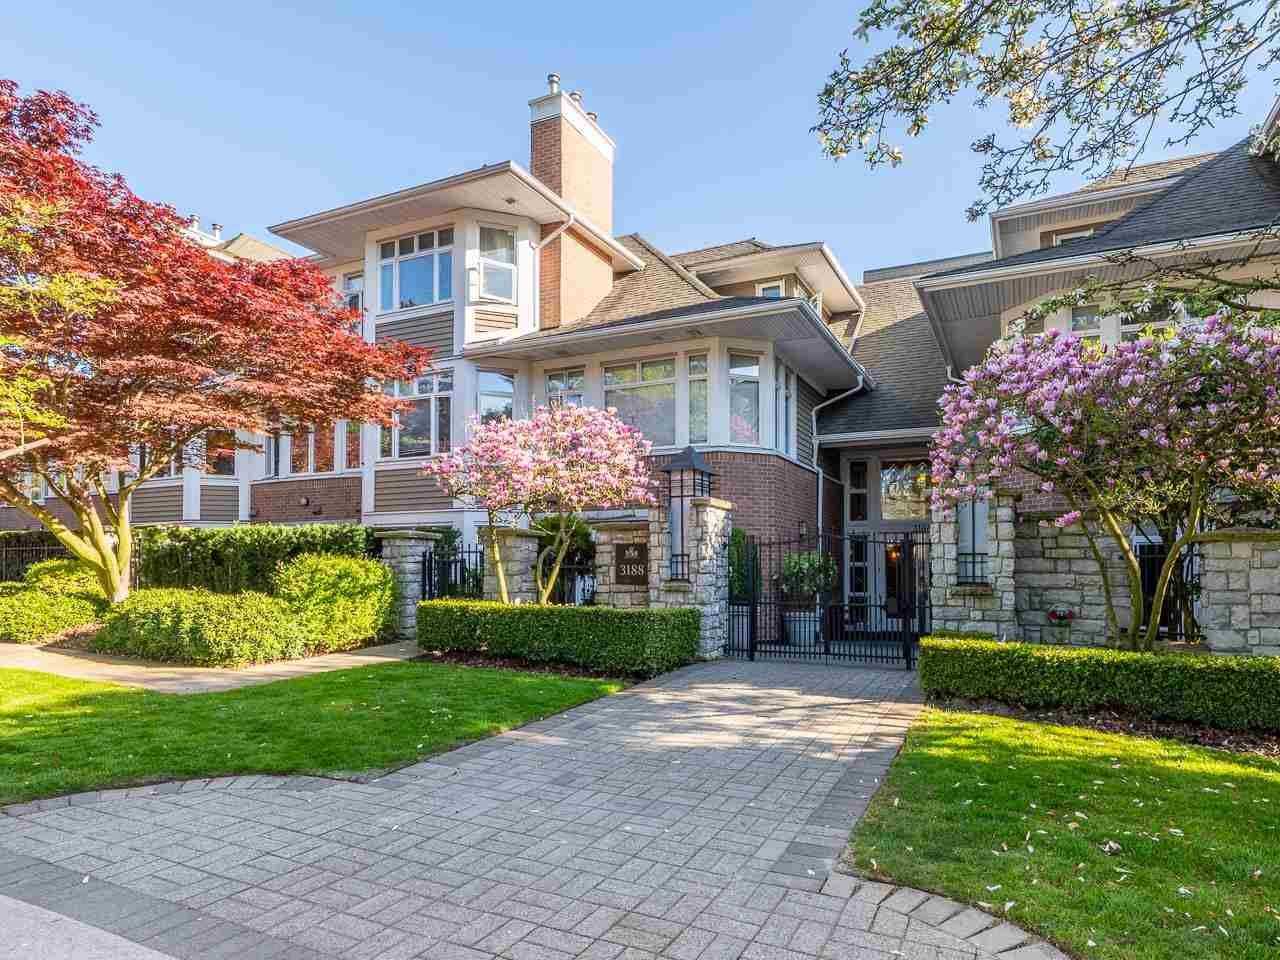 """Main Photo: 114 3188 W 41ST Avenue in Vancouver: Kerrisdale Condo for sale in """"Lanesborough"""" (Vancouver West)  : MLS®# R2573376"""